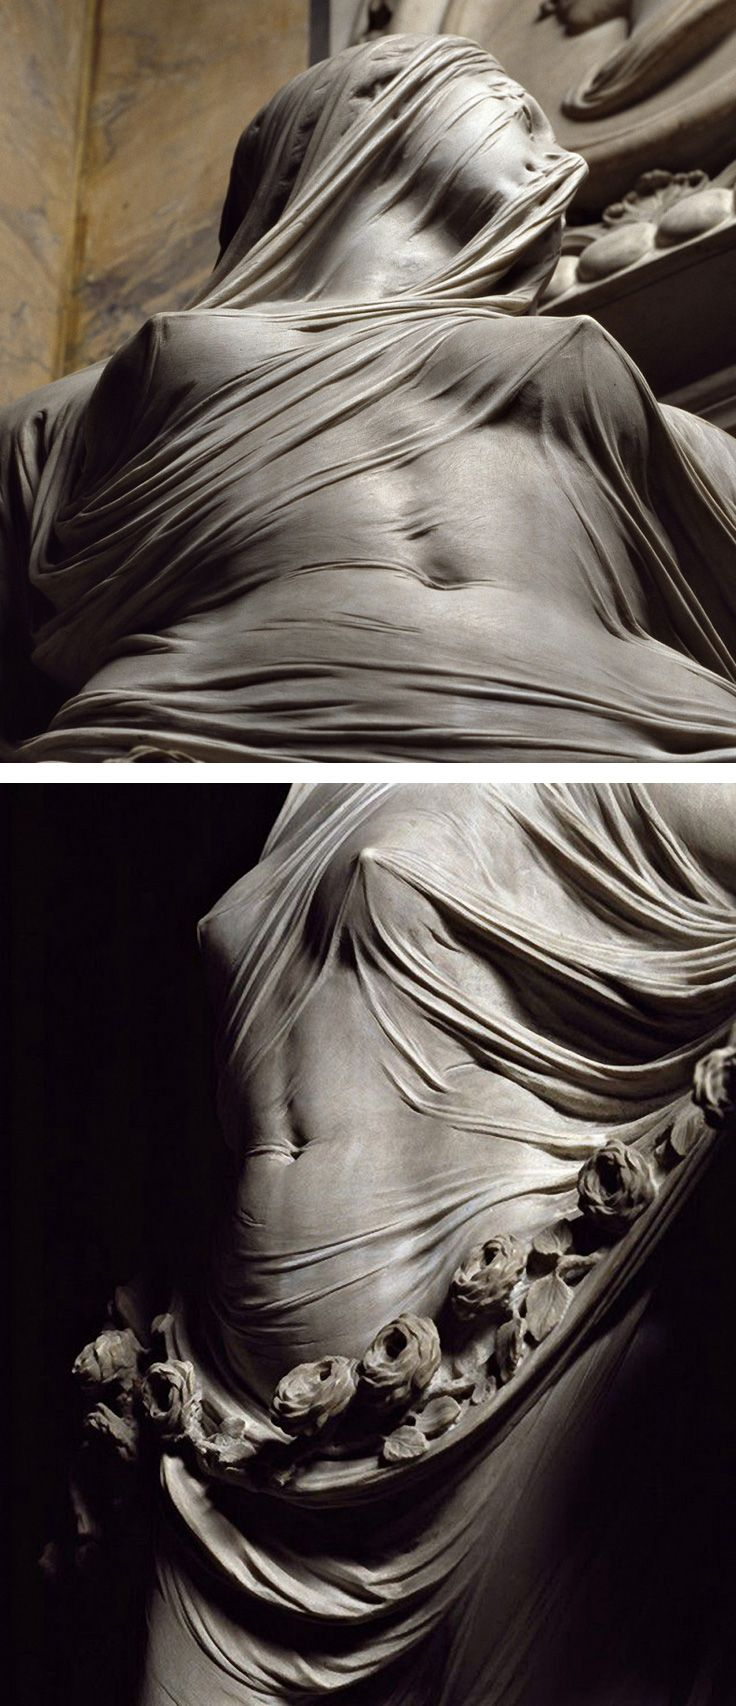 """Modesty"" by Antonio Corradini (Italian, 1688–1752), marble statue of veiled female with exquisite sculpture of translucent fabric, c. 1751. #arthistory"